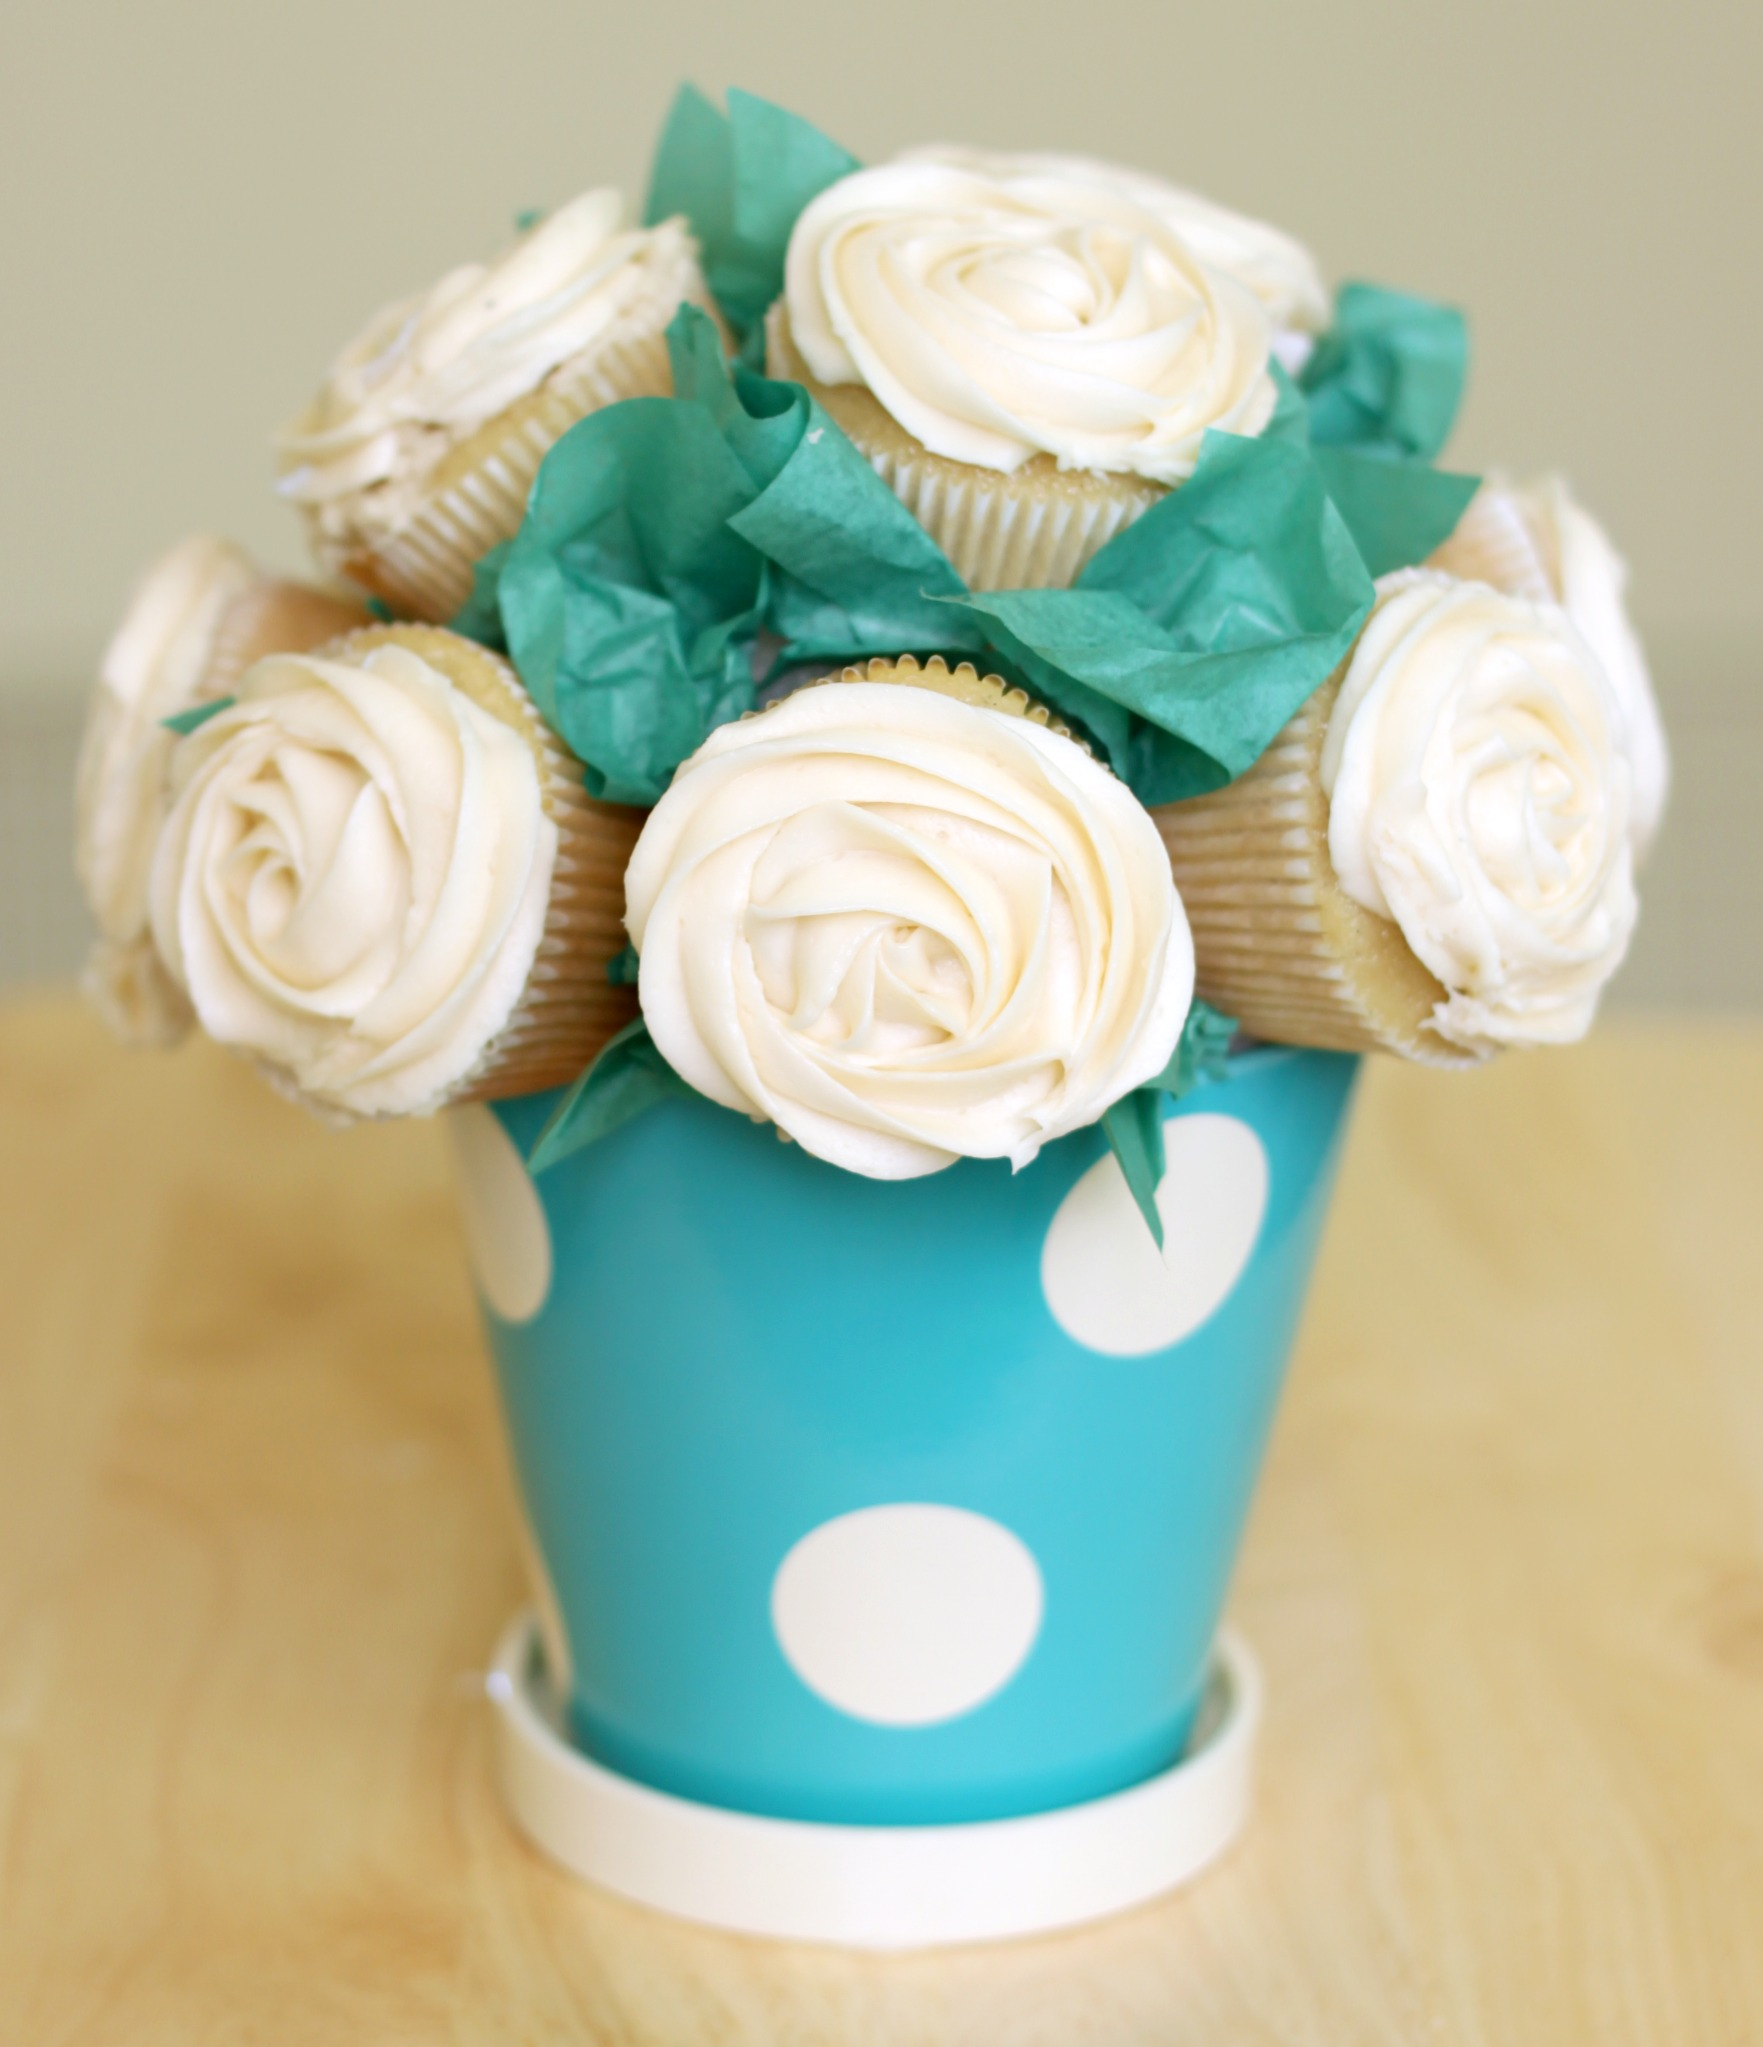 Cupcake-Rose-Bouquet.jpg